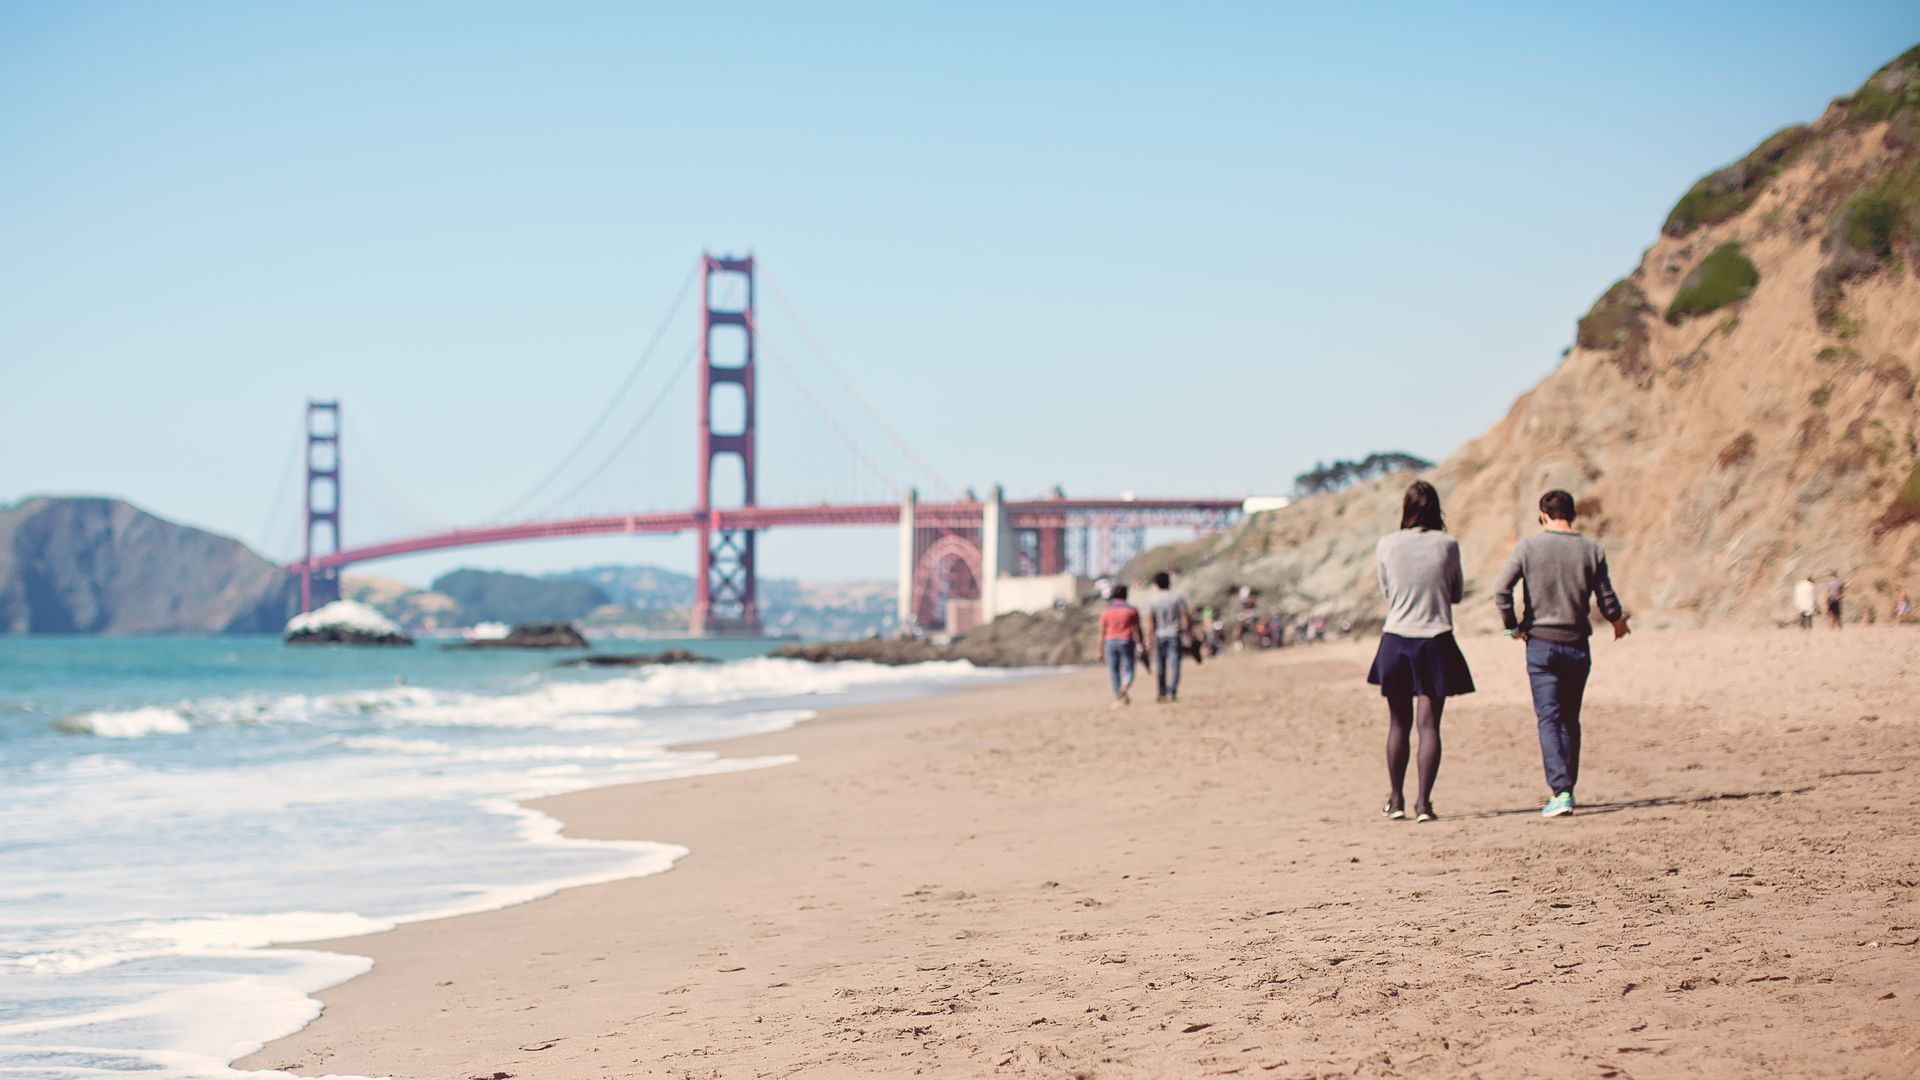 A view of the Golden Gate Bridge from Baker Beach in San Francisco.